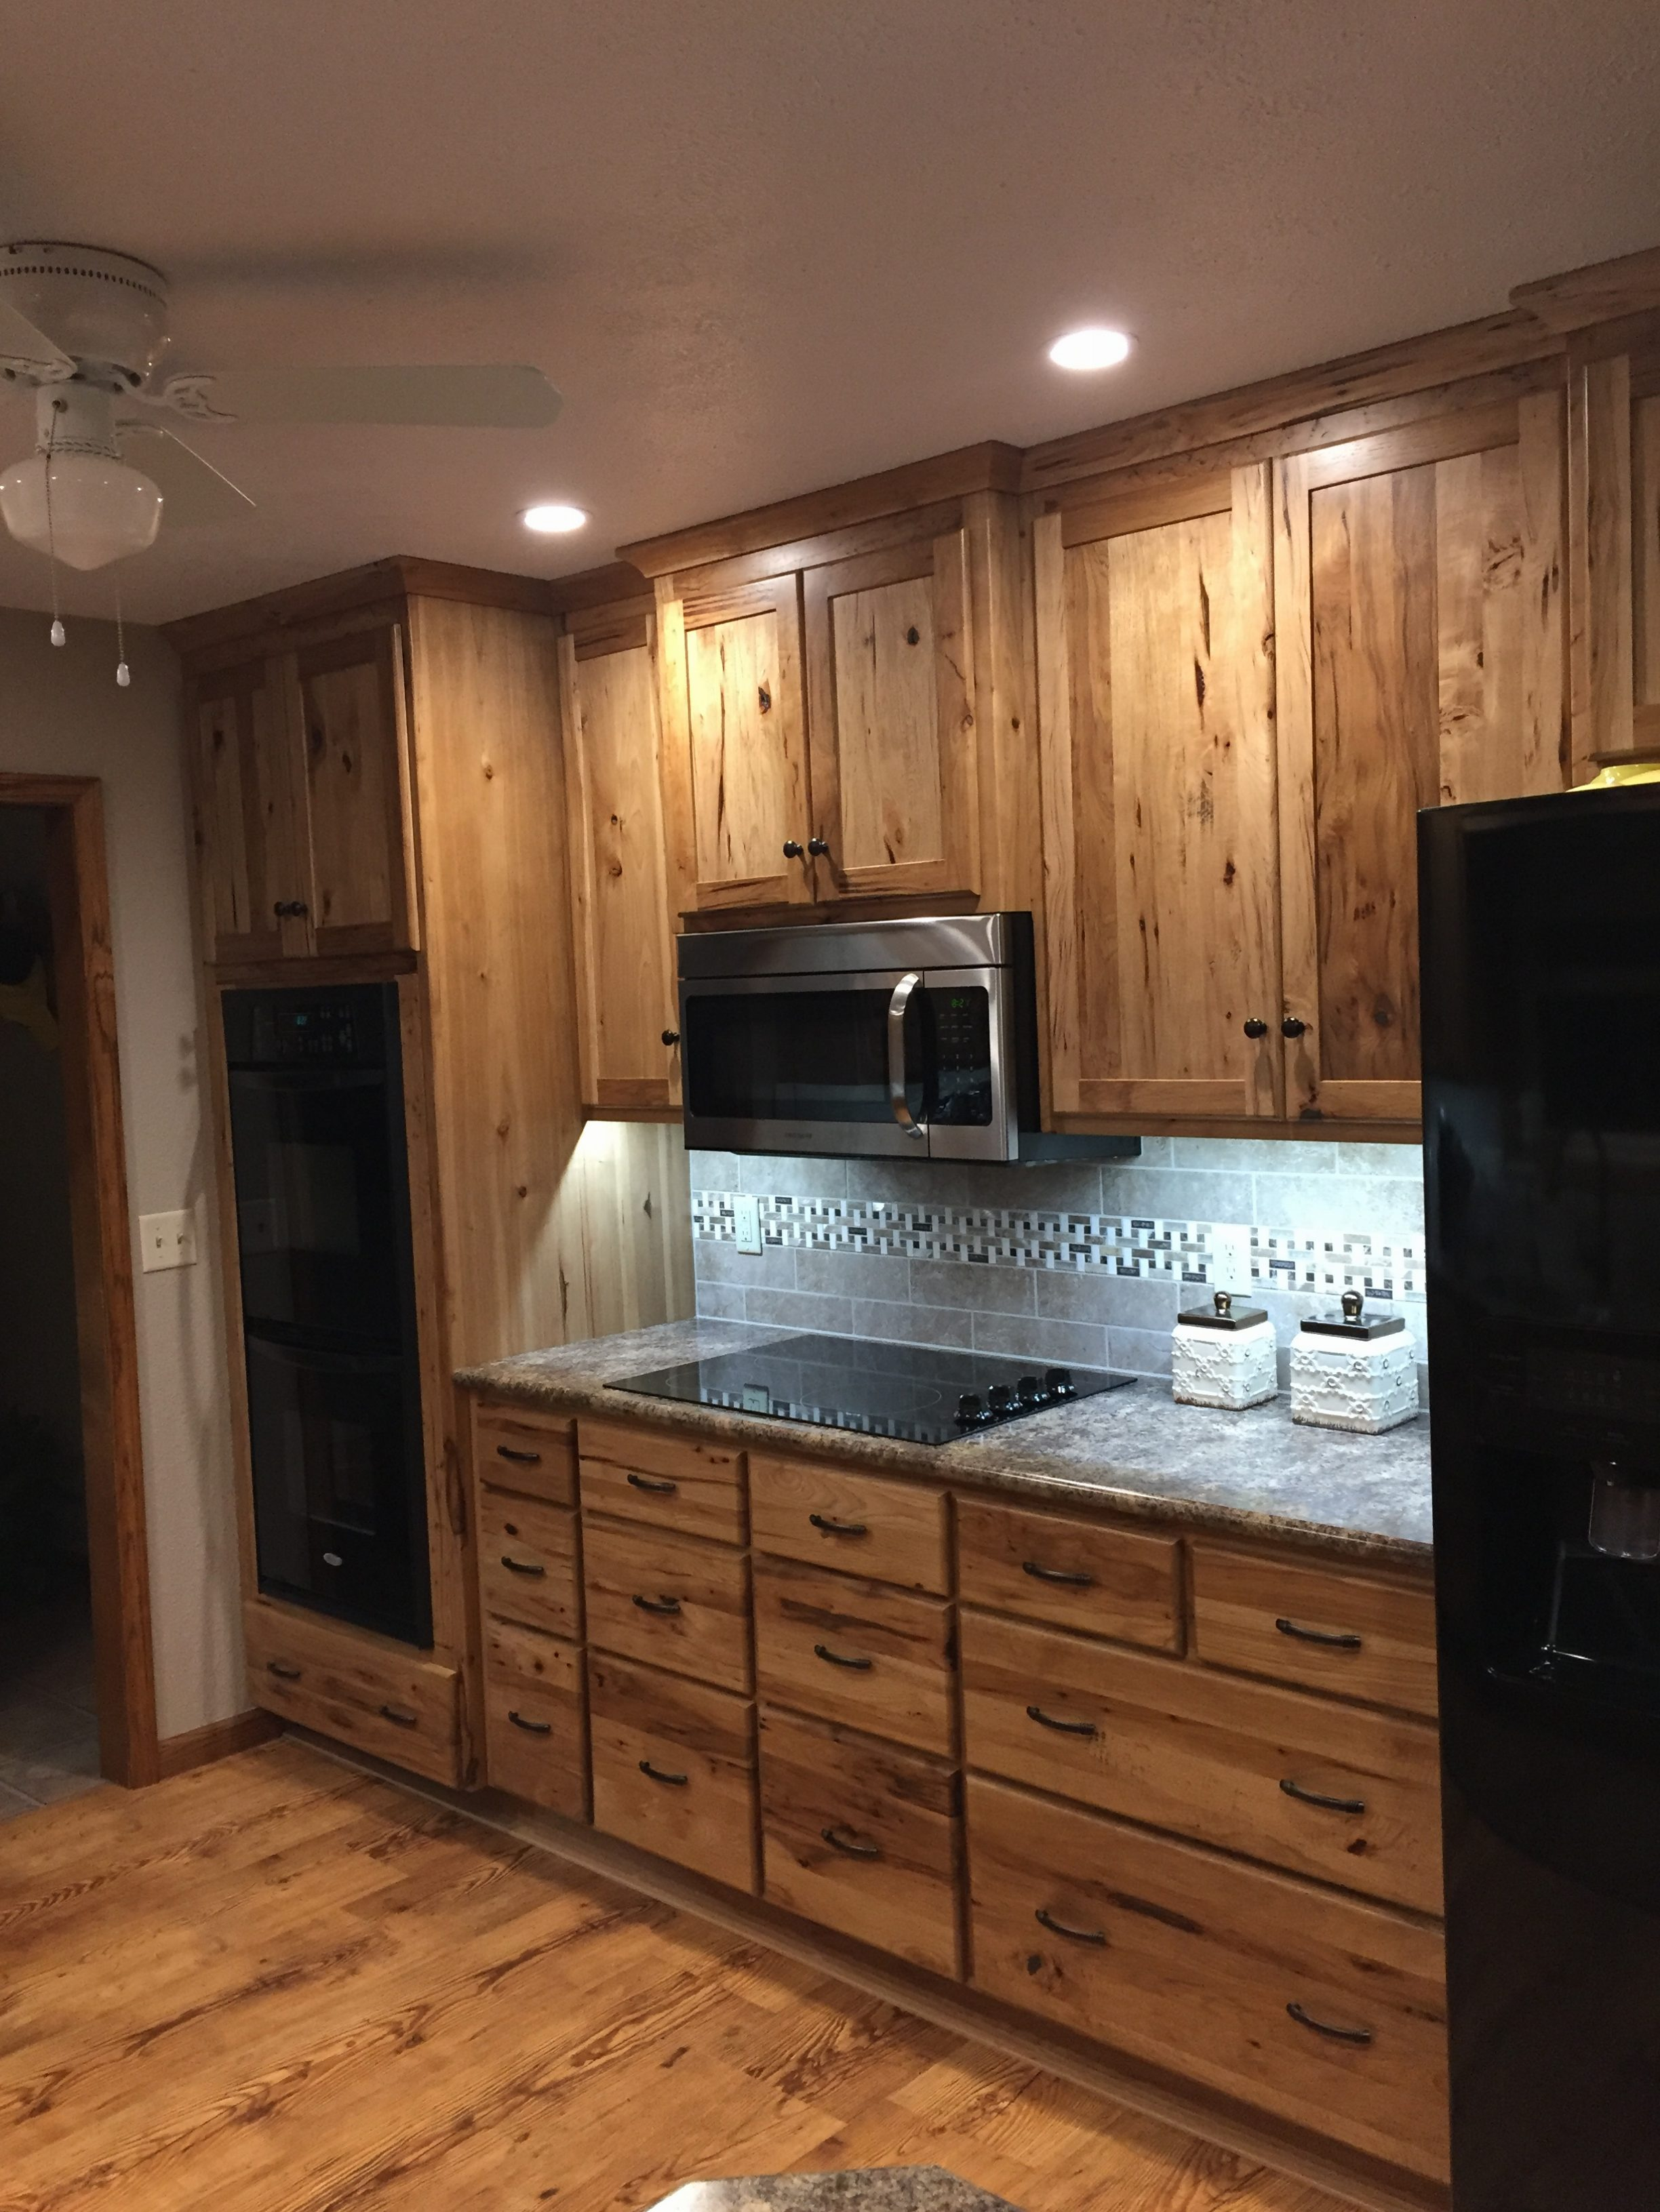 Rustic Hickory Kitchen Cabinets - Wheatstate Wood Design